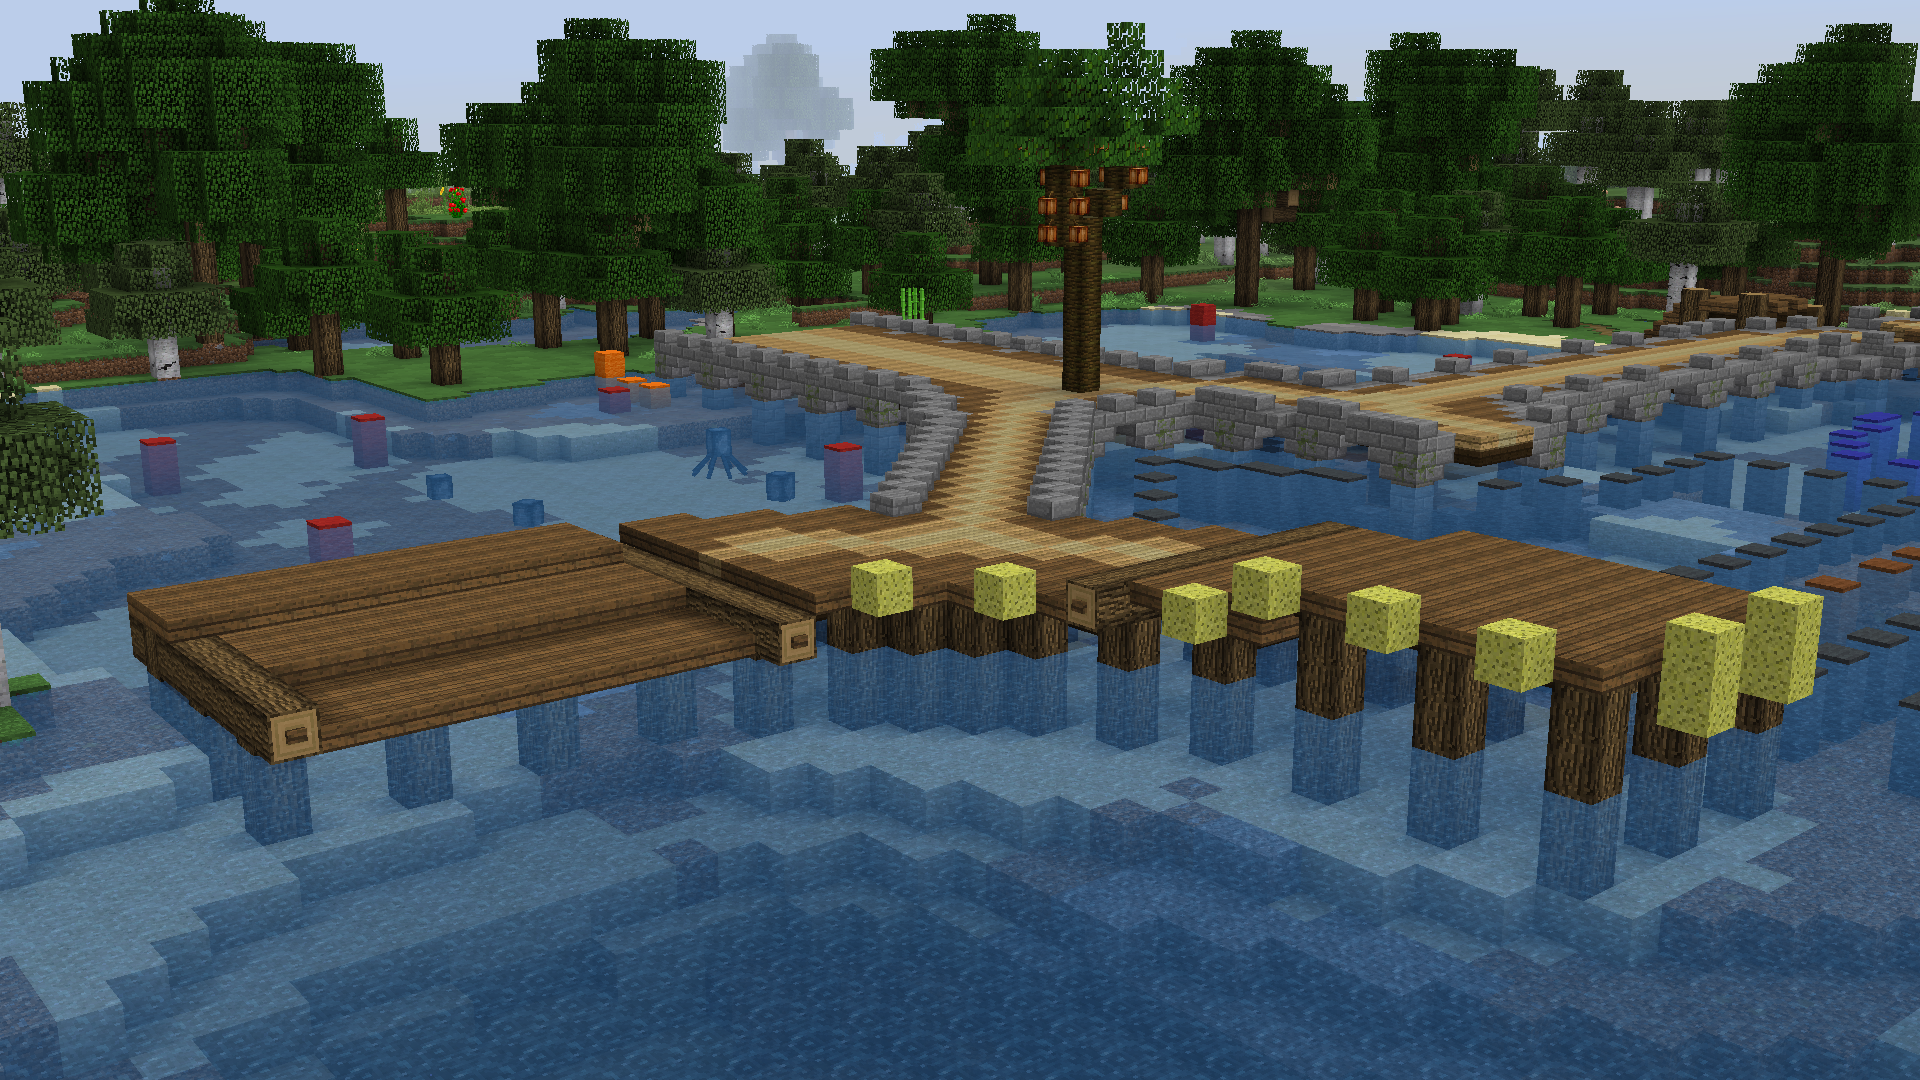 Larger docks